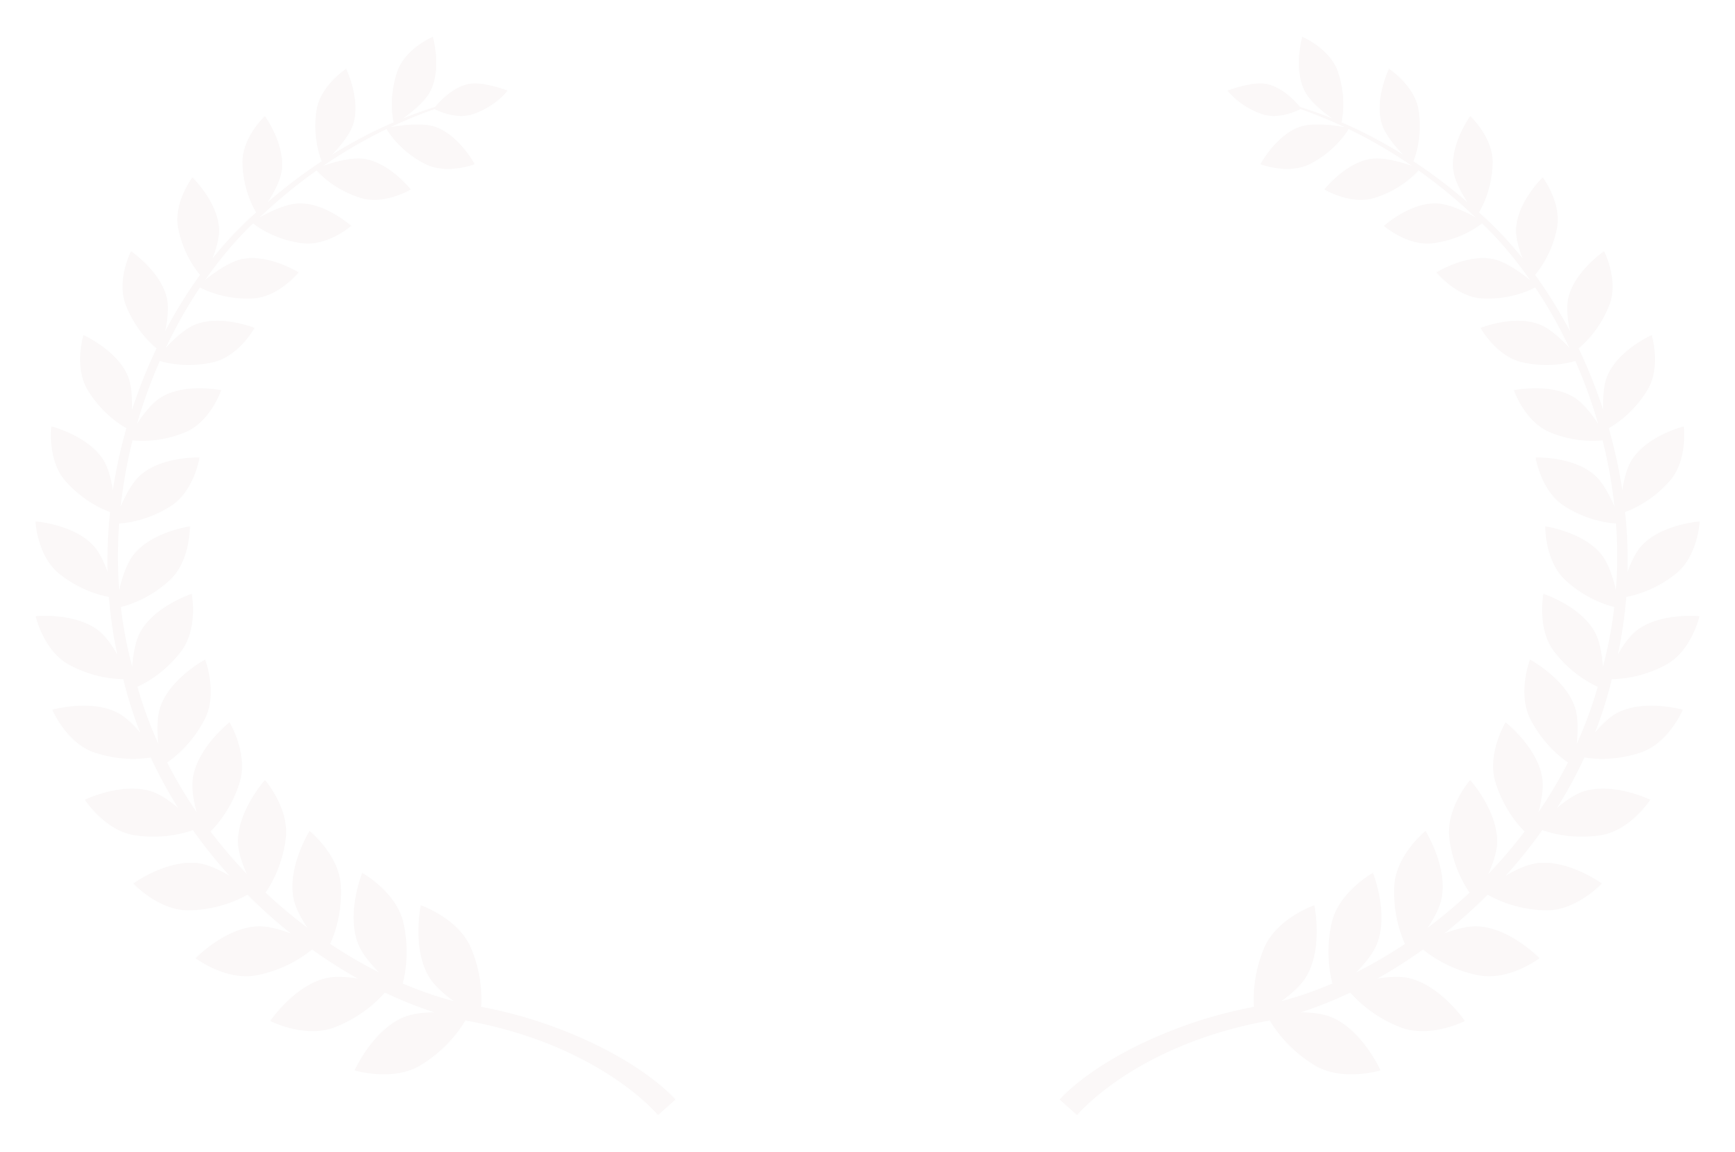 OFFICIAL SELECTION - Reading Film FEST - 2019white.png